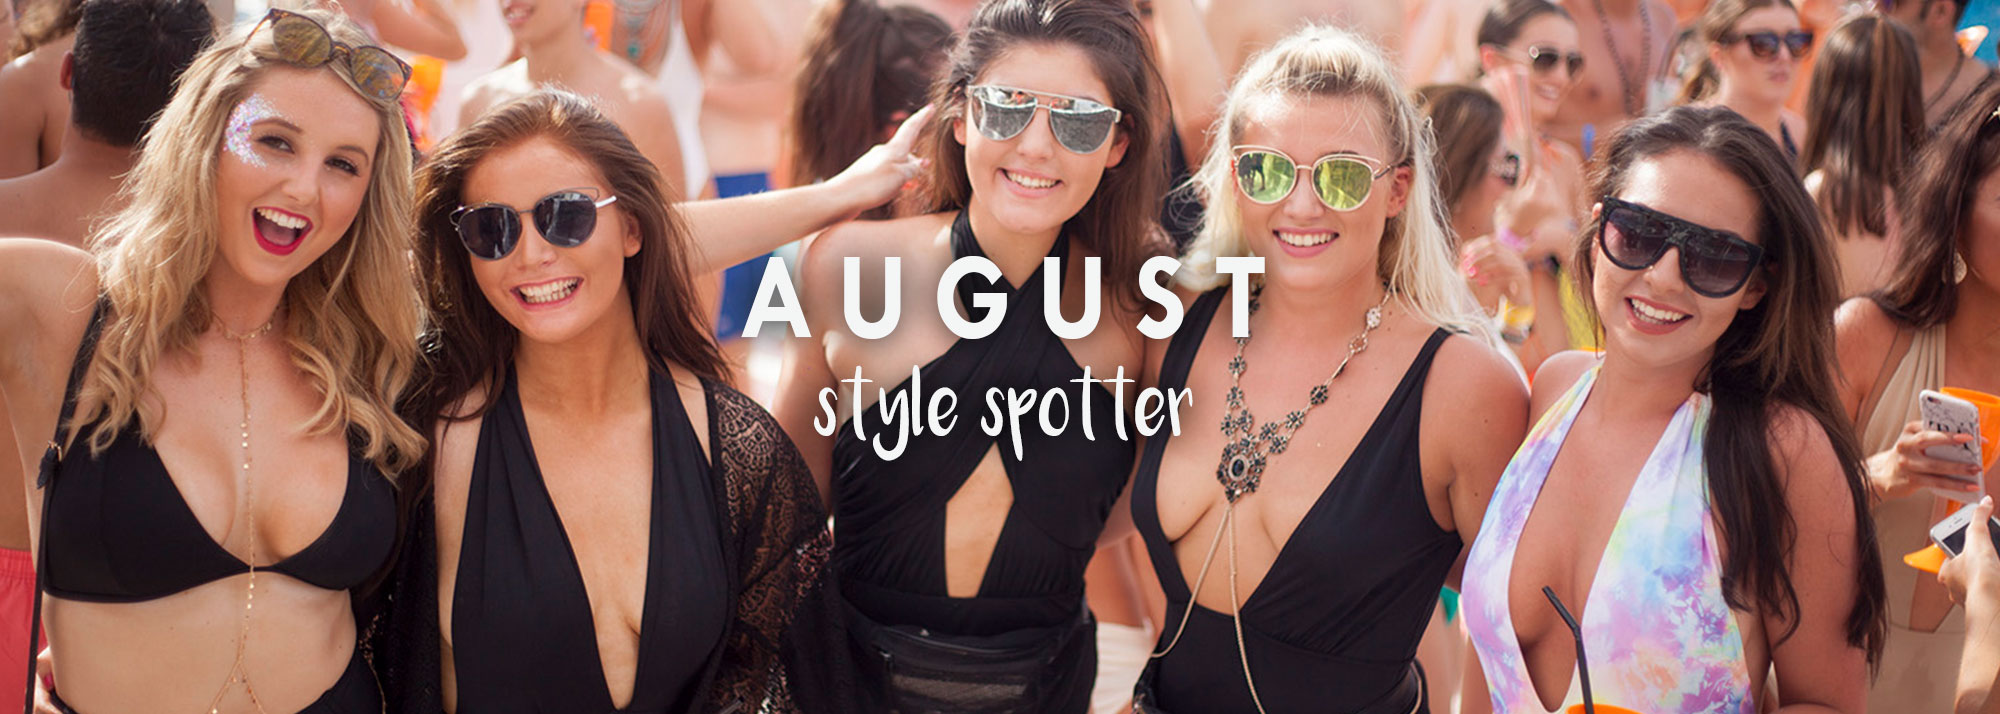 August Style Spotter!